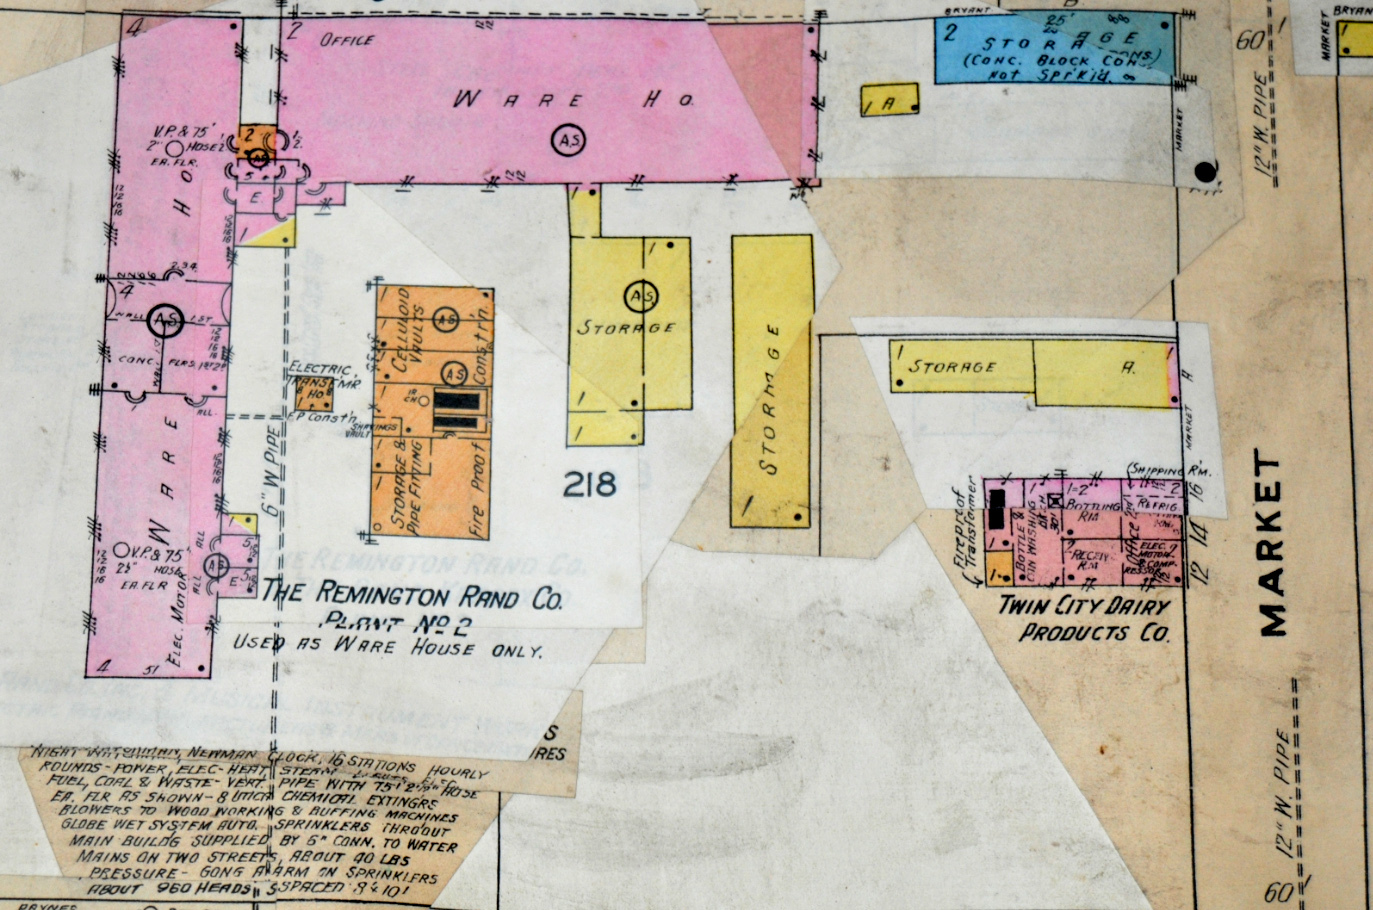 Rand Plant No2, Twin City Dairy, map (Sanborn Insurance, HST, c1930).jpg